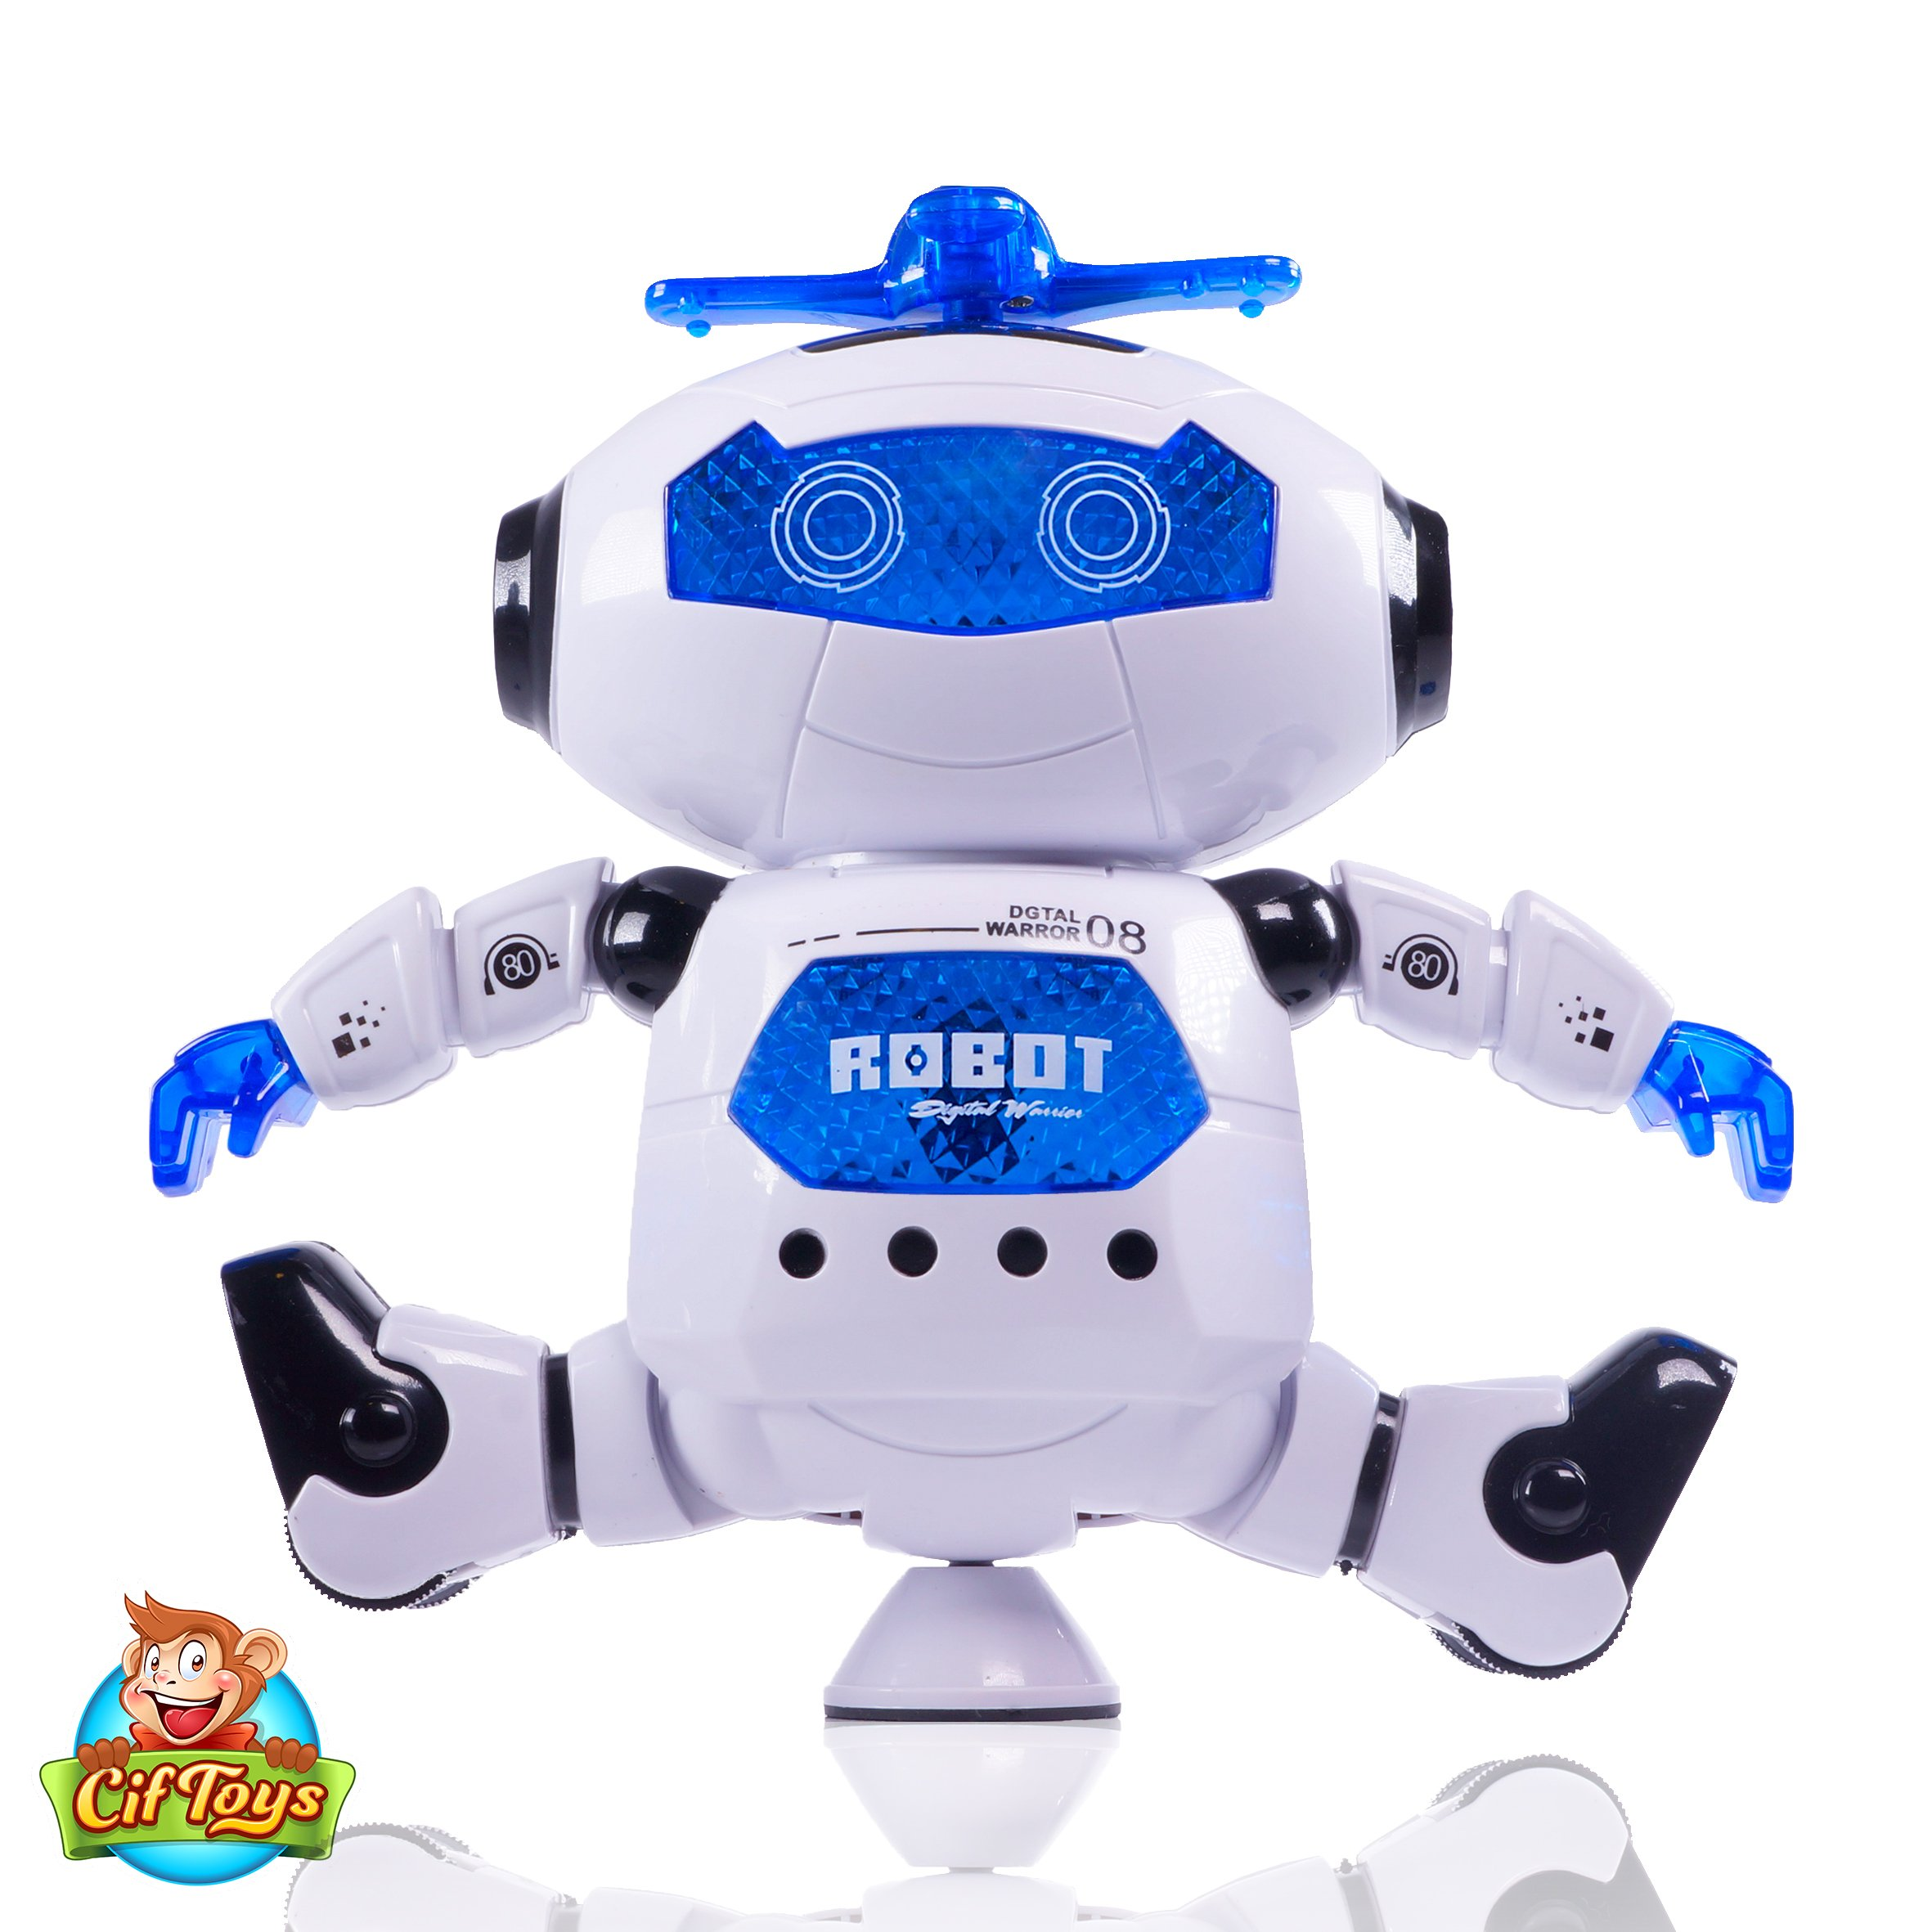 CifToys Electronic Dancing Robot Toy For Kids Boys Girls